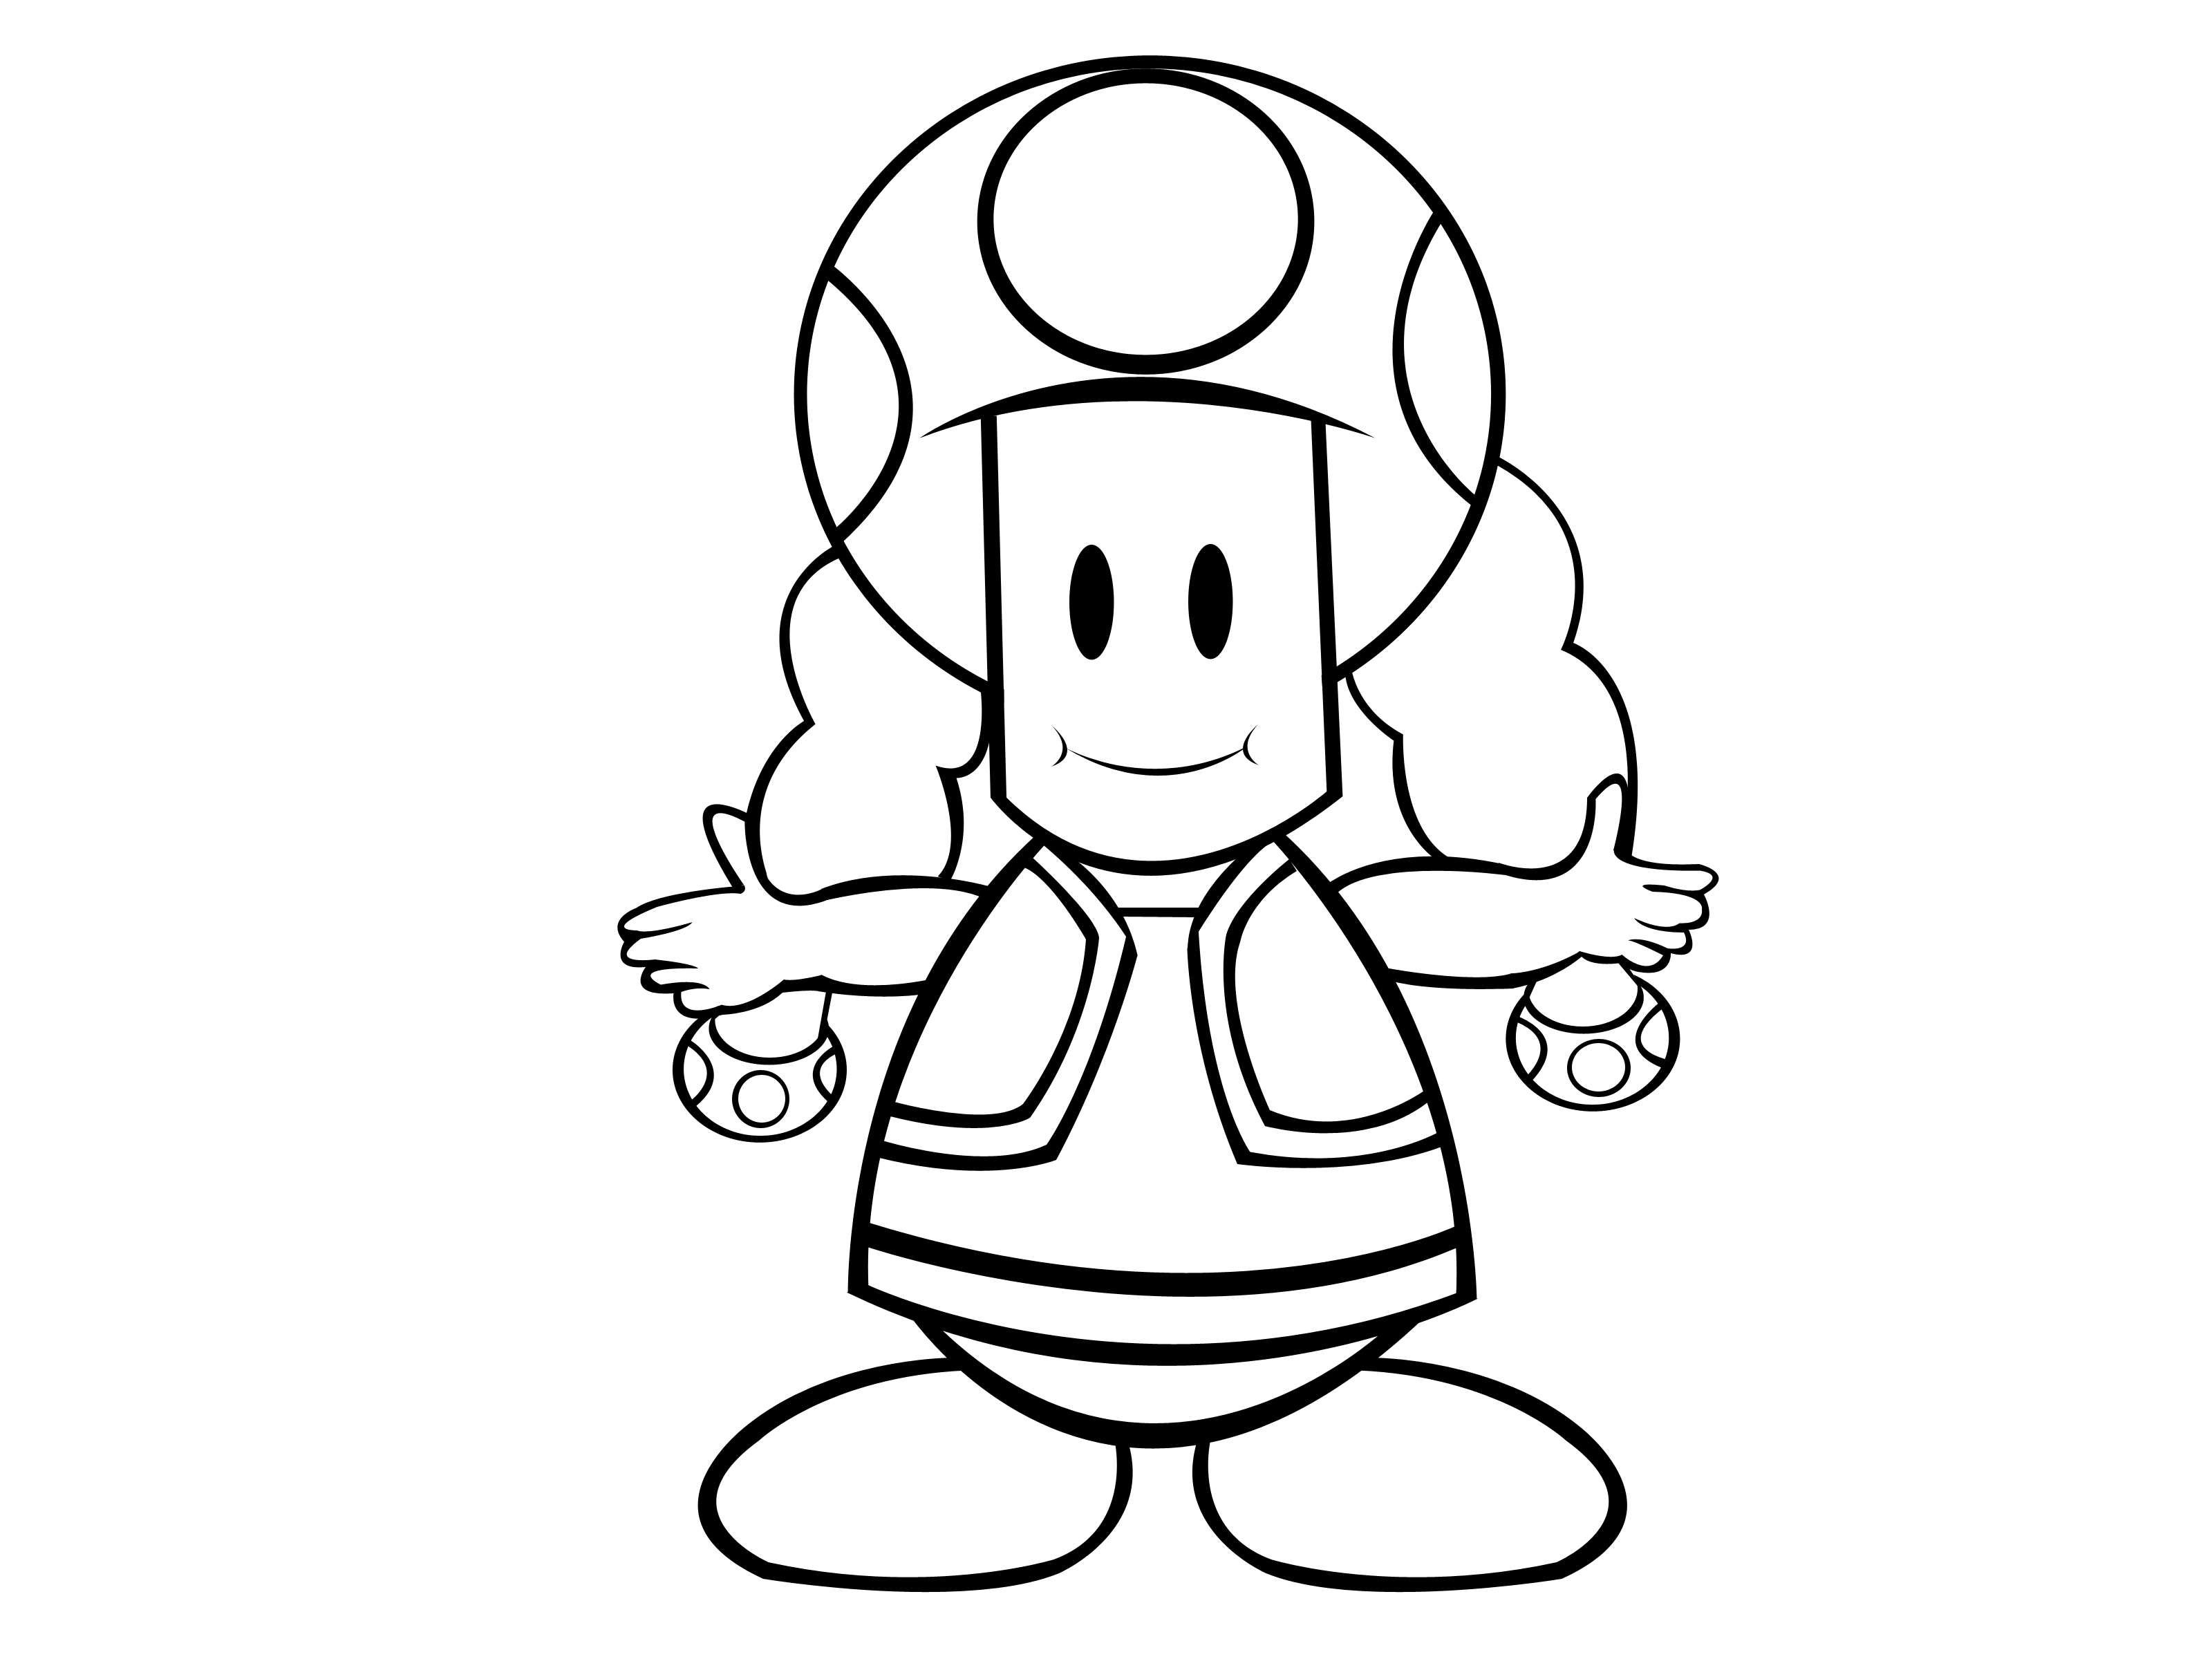 Toad Mario Drawing at GetDrawings.com | Free for personal use Toad ...